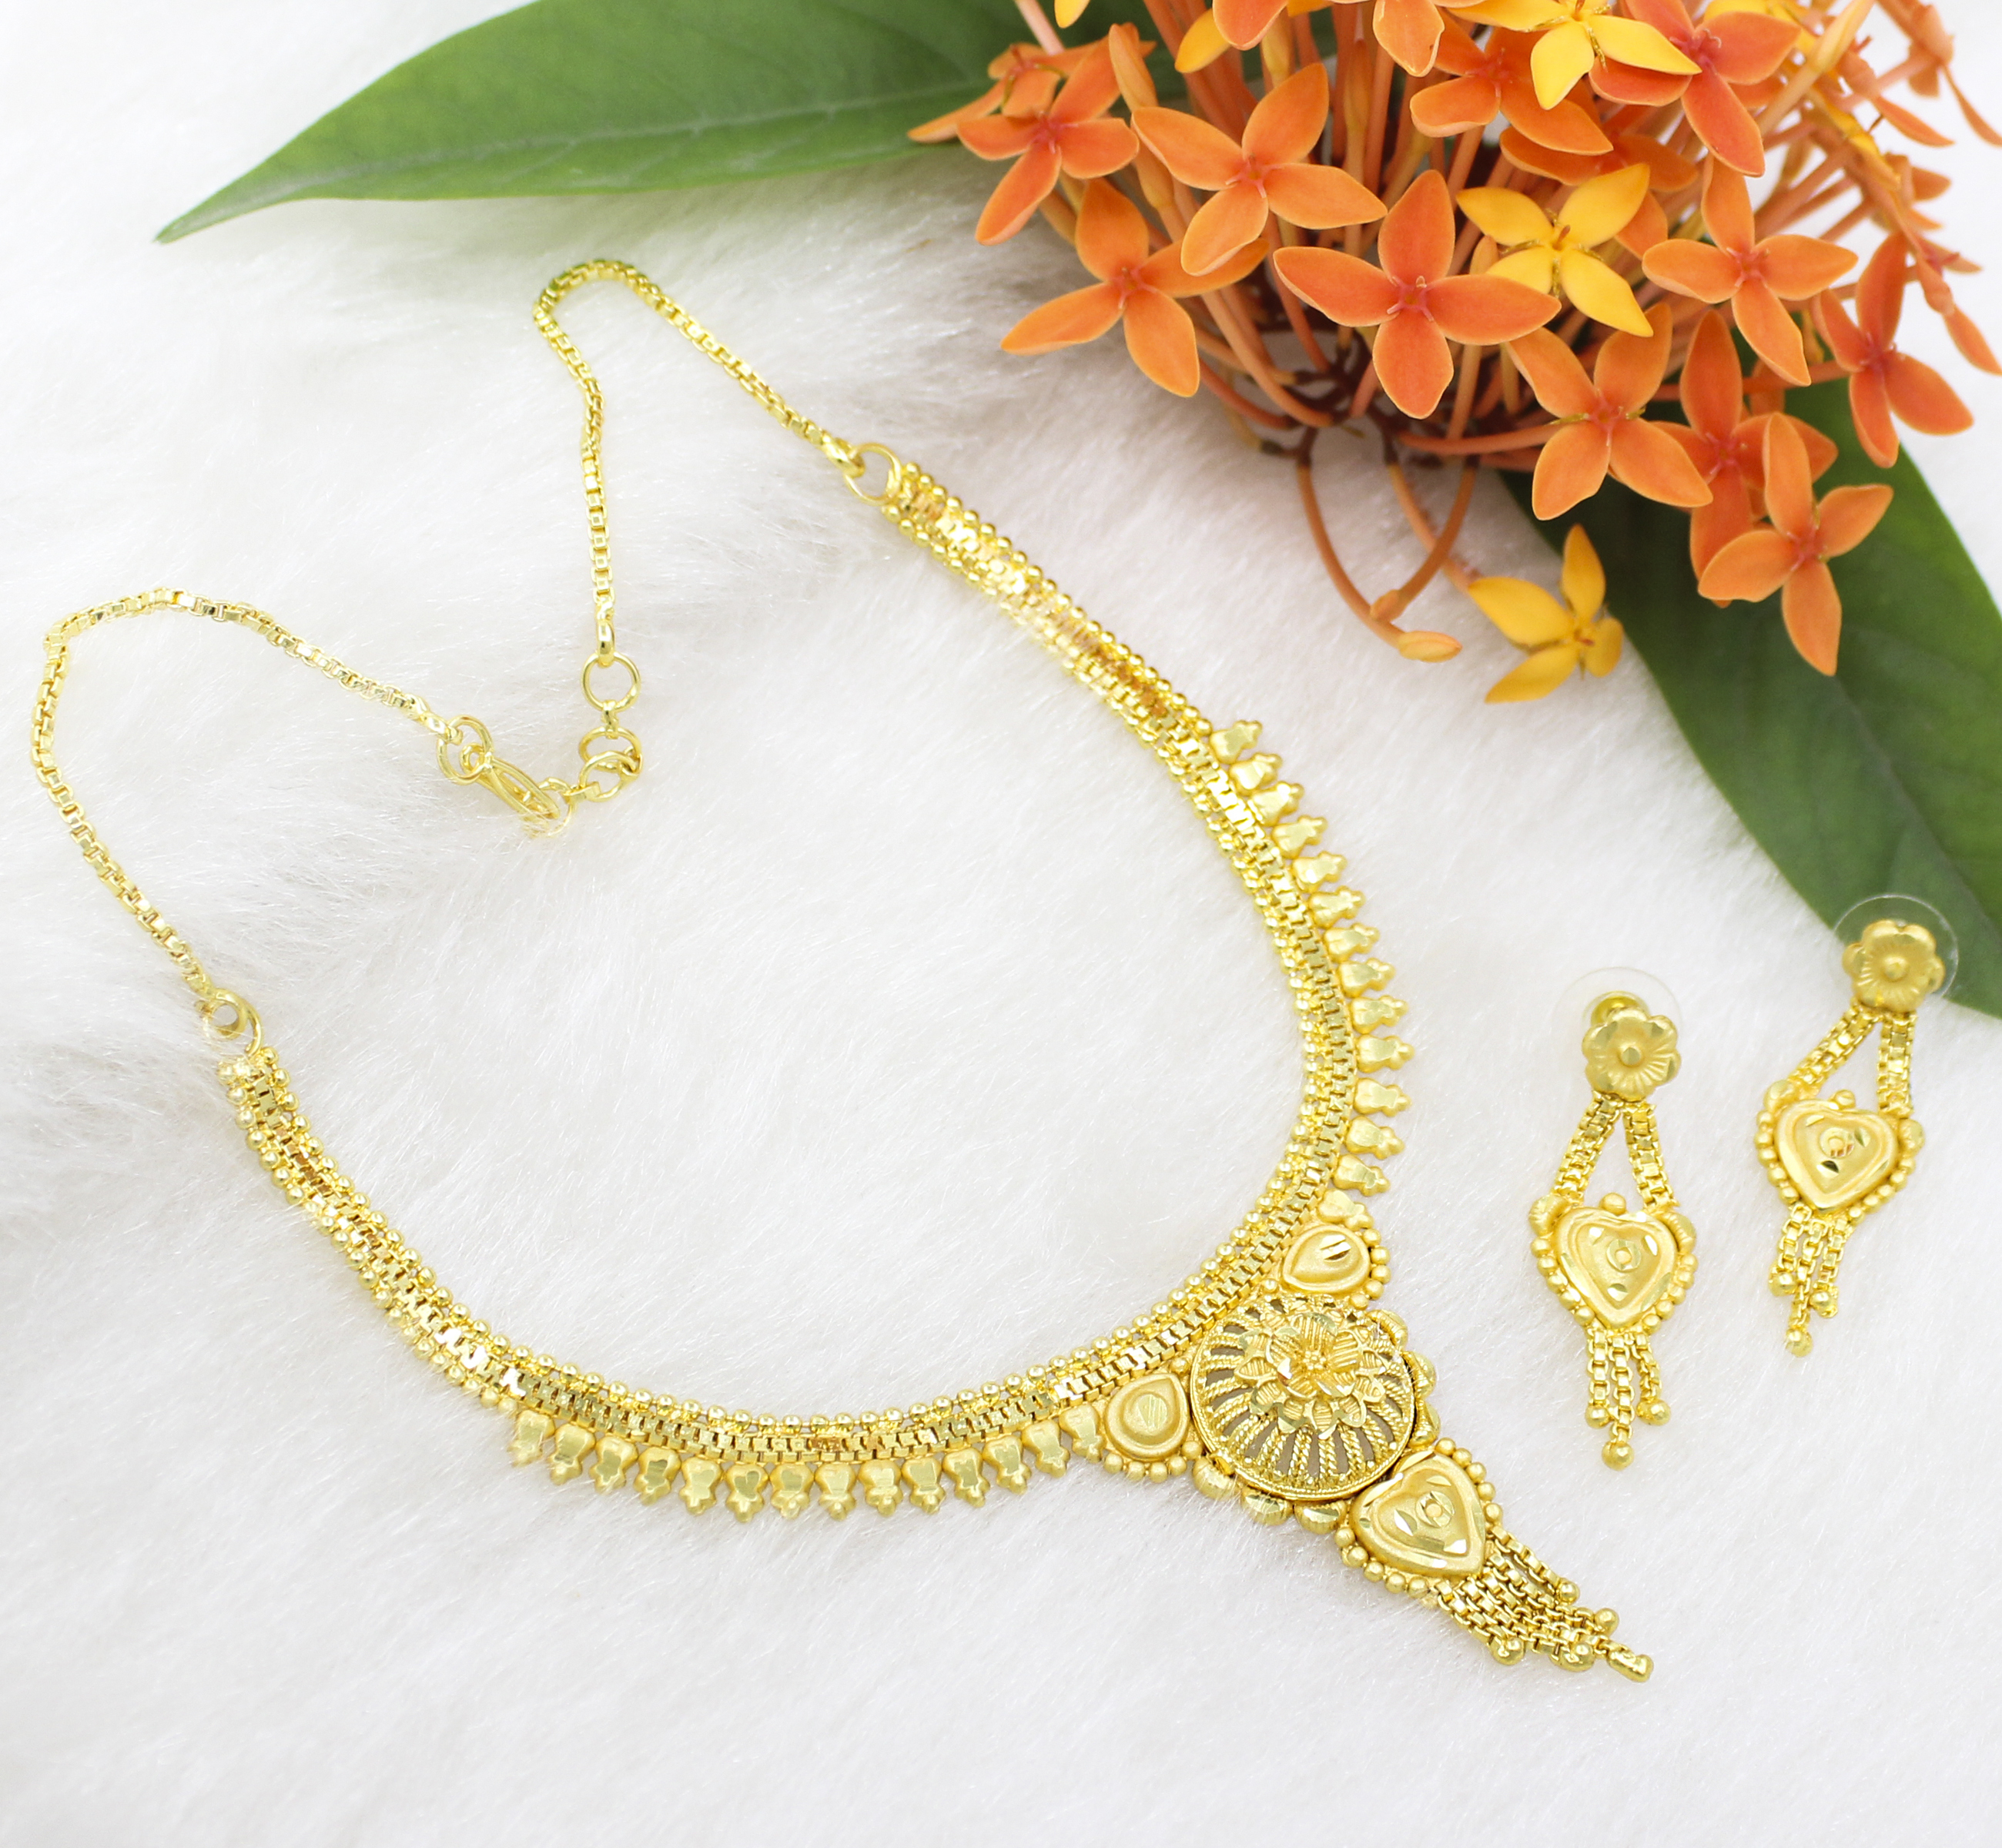 Traditional One Gram Gold Plated Forming Golden Choker Necklace/Jewelry Set